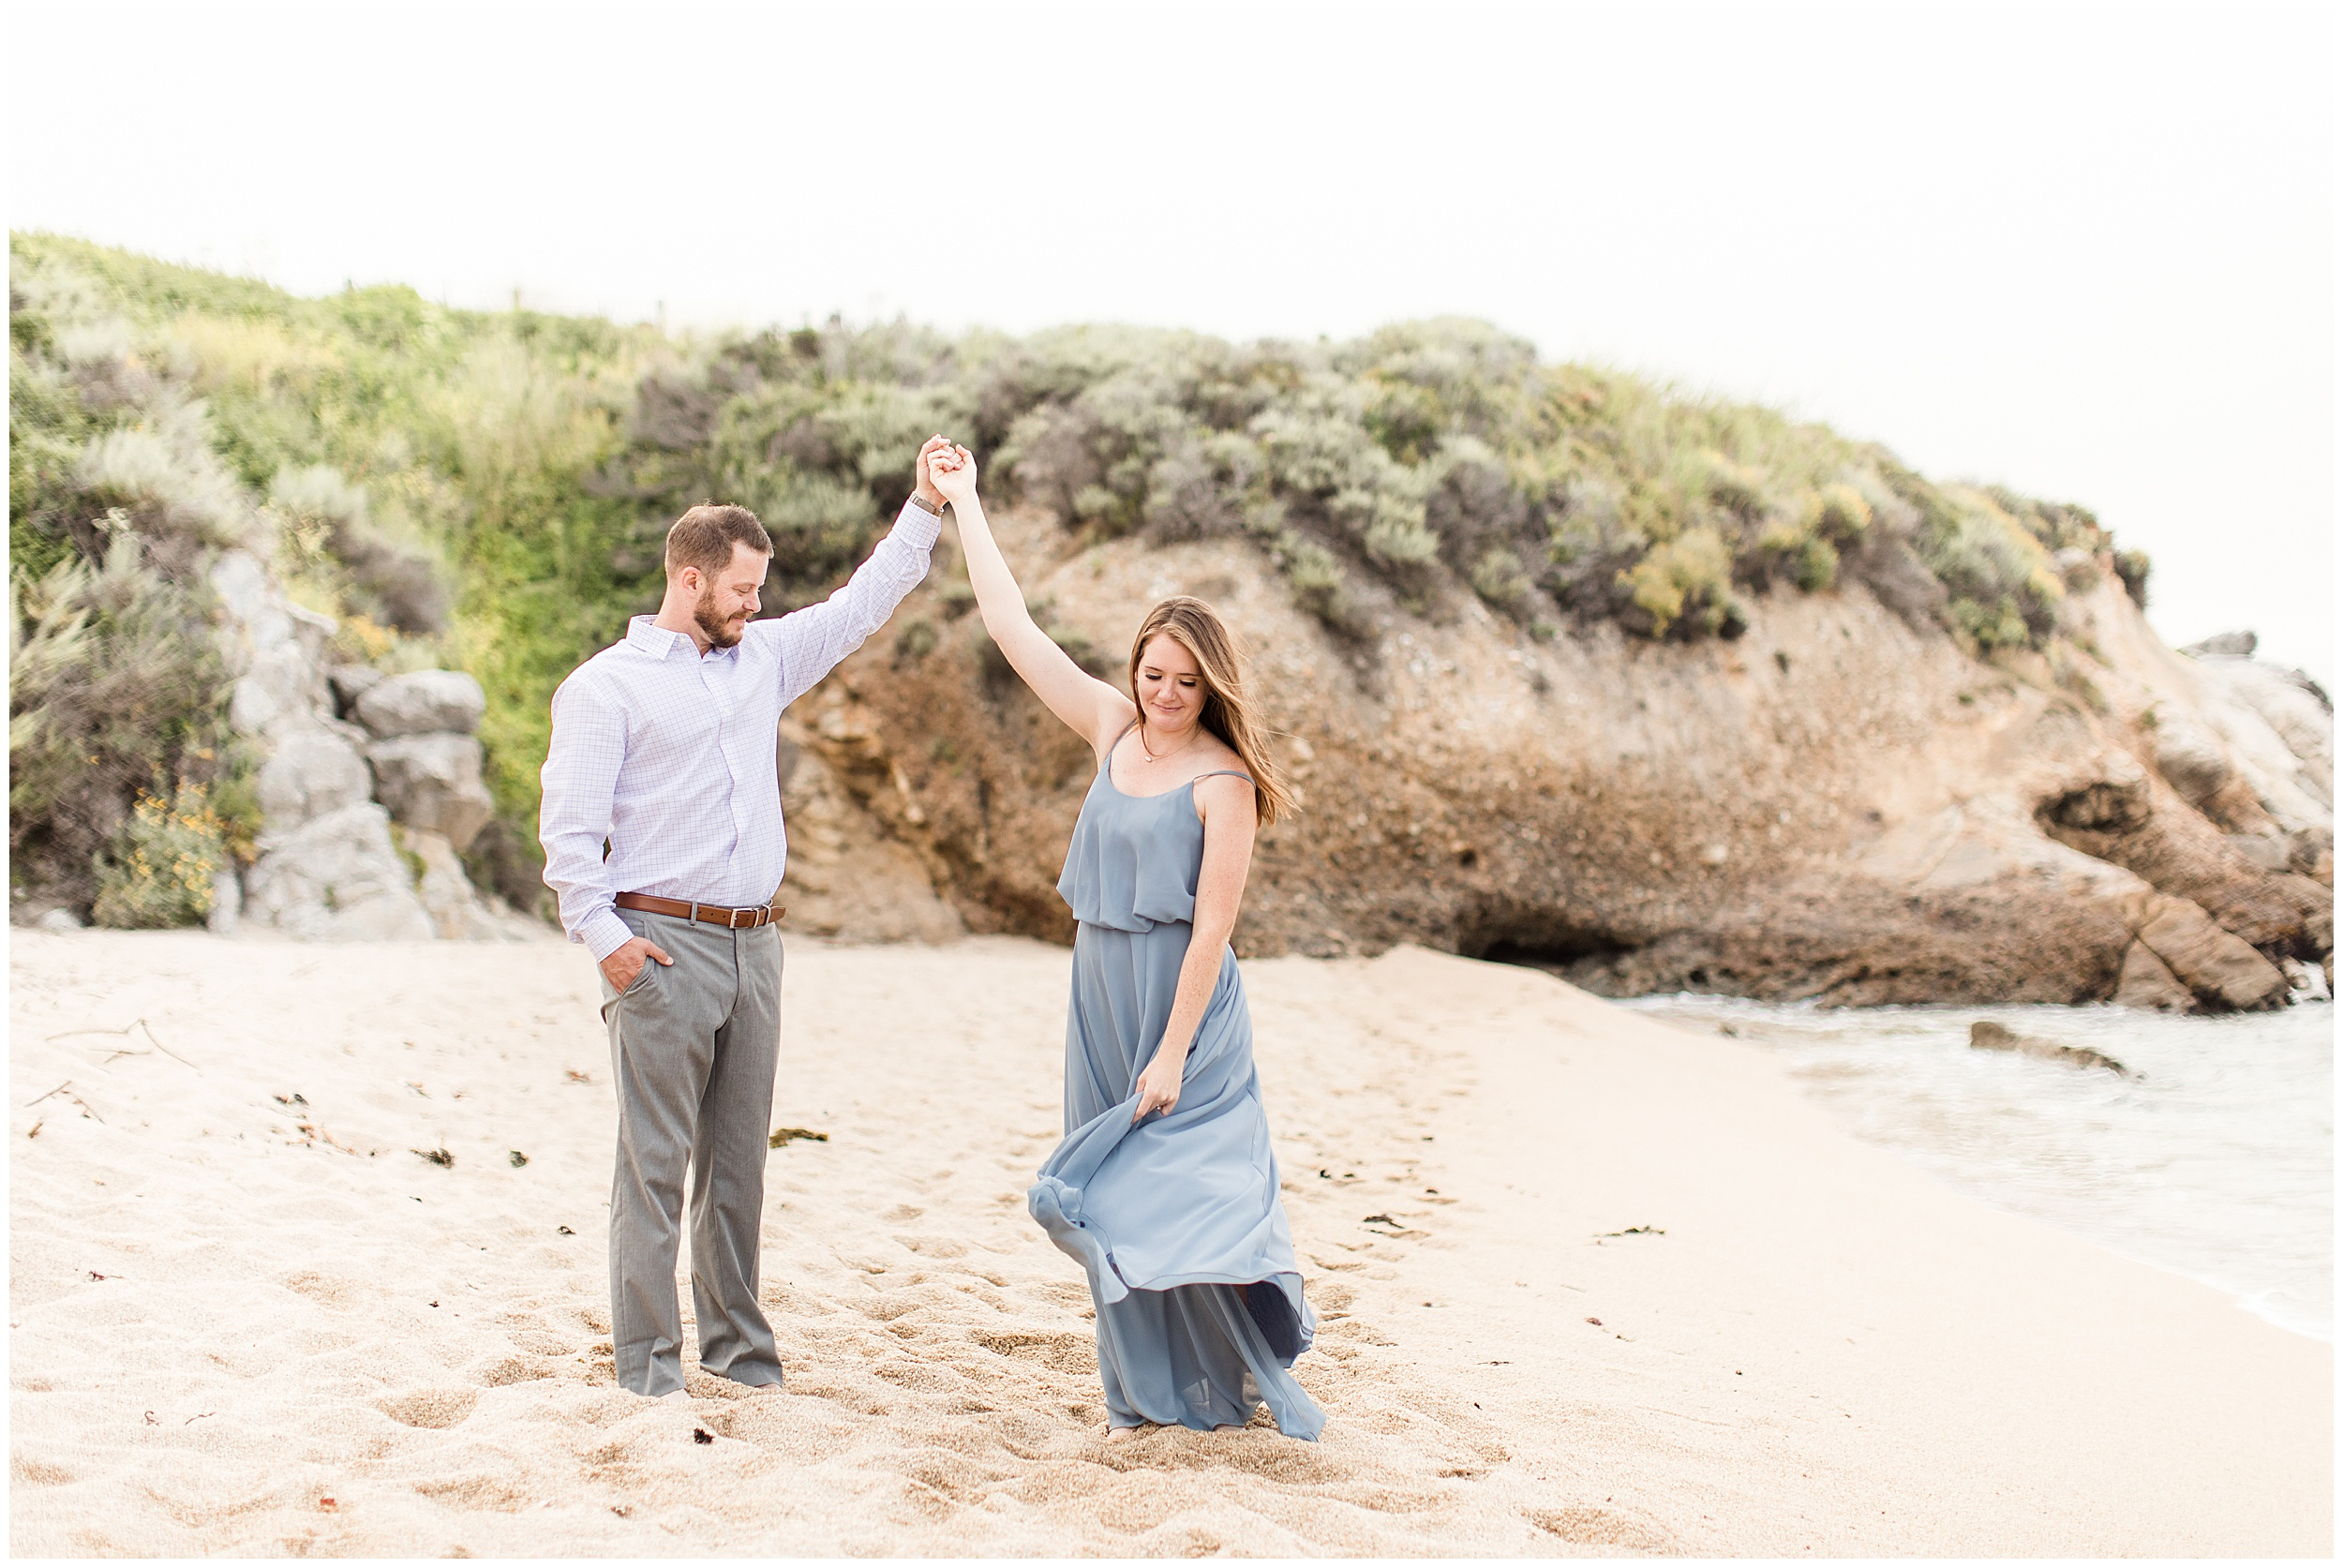 2019 carmel by the sea surprise proposal engagement session wedding photographer angela sue photography_0032.jpg